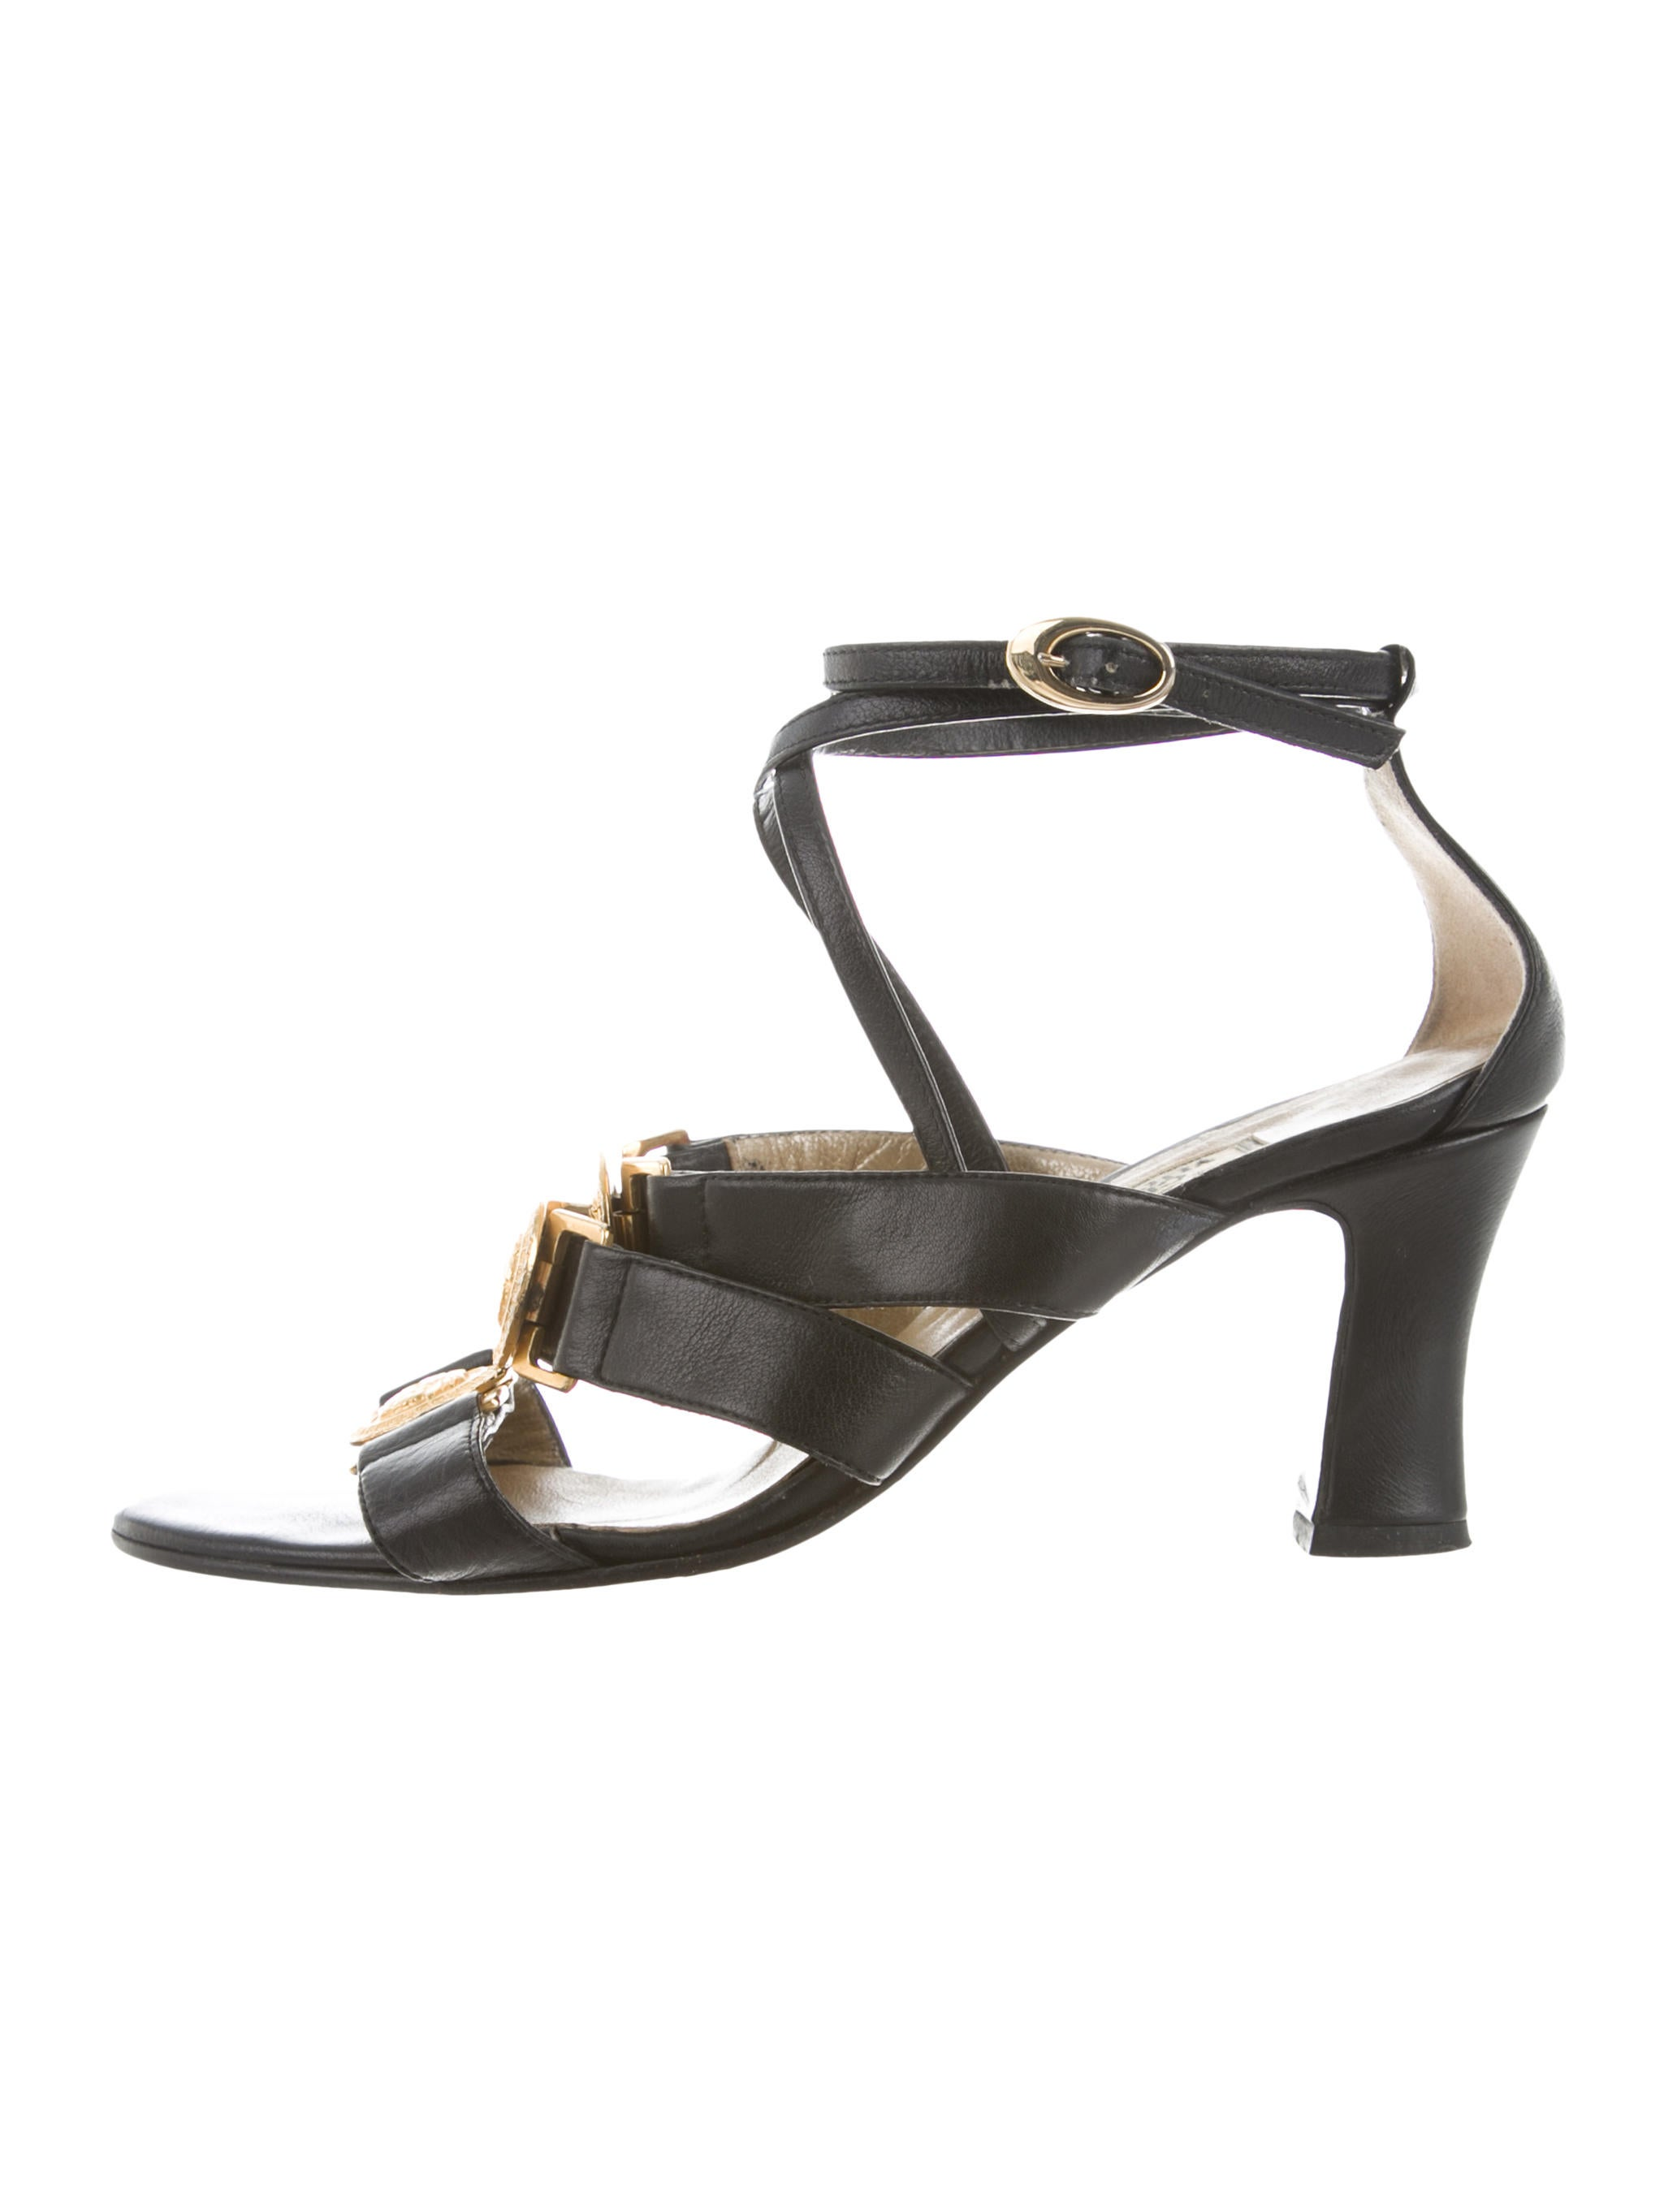 Gianni Versace Medusa Multistrap Sandals clearance high quality newest cheap price sale cheap price discount high quality sale 2014 unisex NpzpczIg1